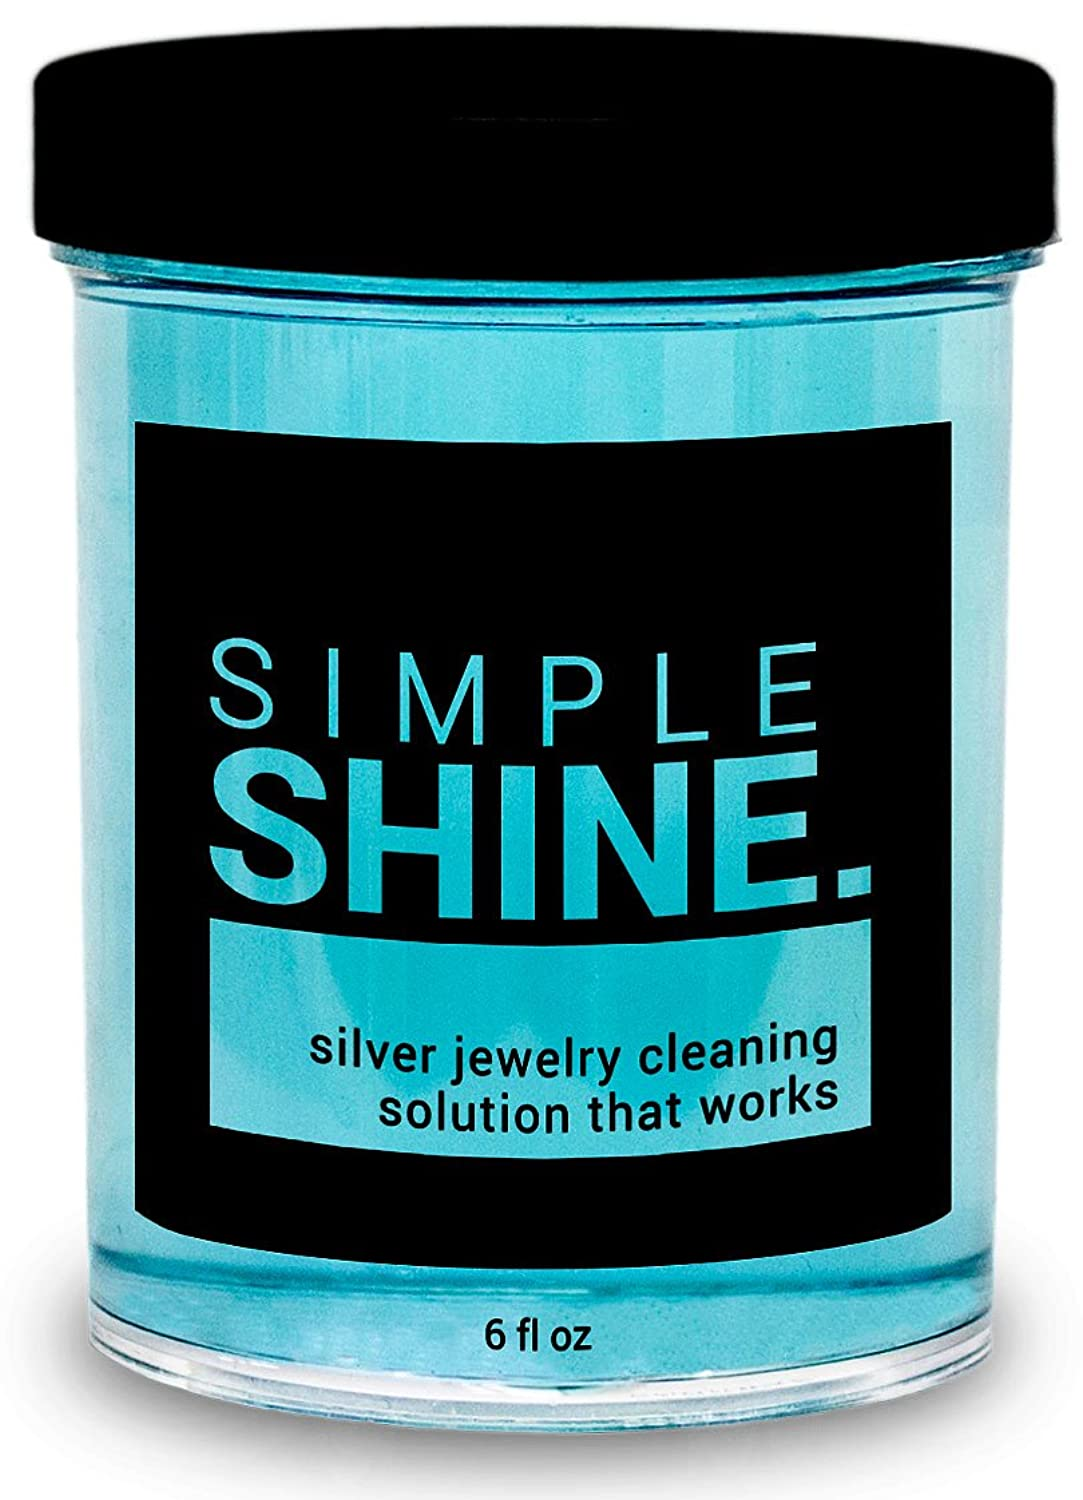 Amazon: New Silver Jewelry Cleaner Solution  Cleaning For Sterling  Jewelry, Coins, Silverware And More: Jewelry